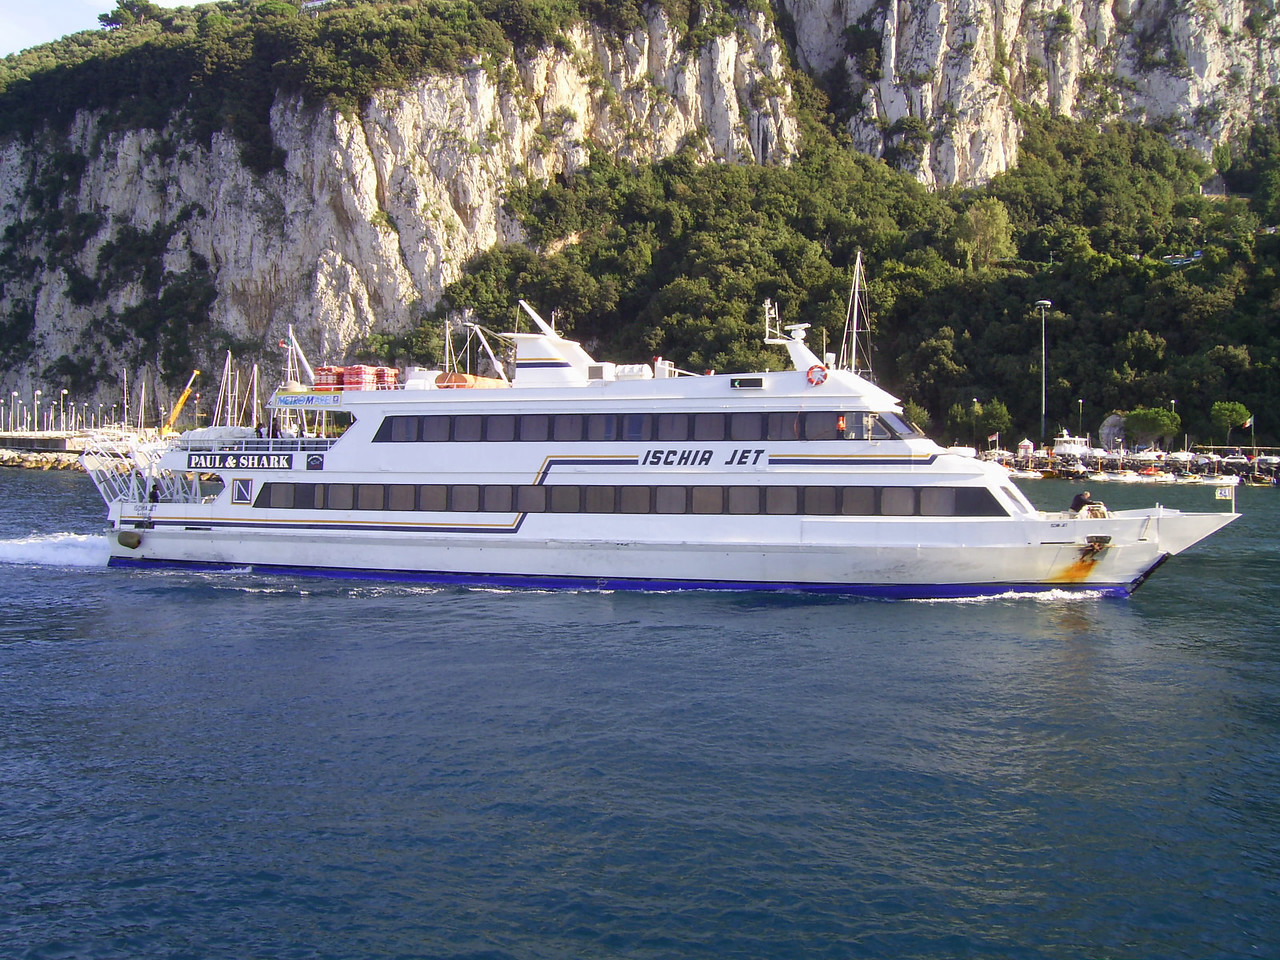 2007 - ISCHIA JET arriving to Capri.